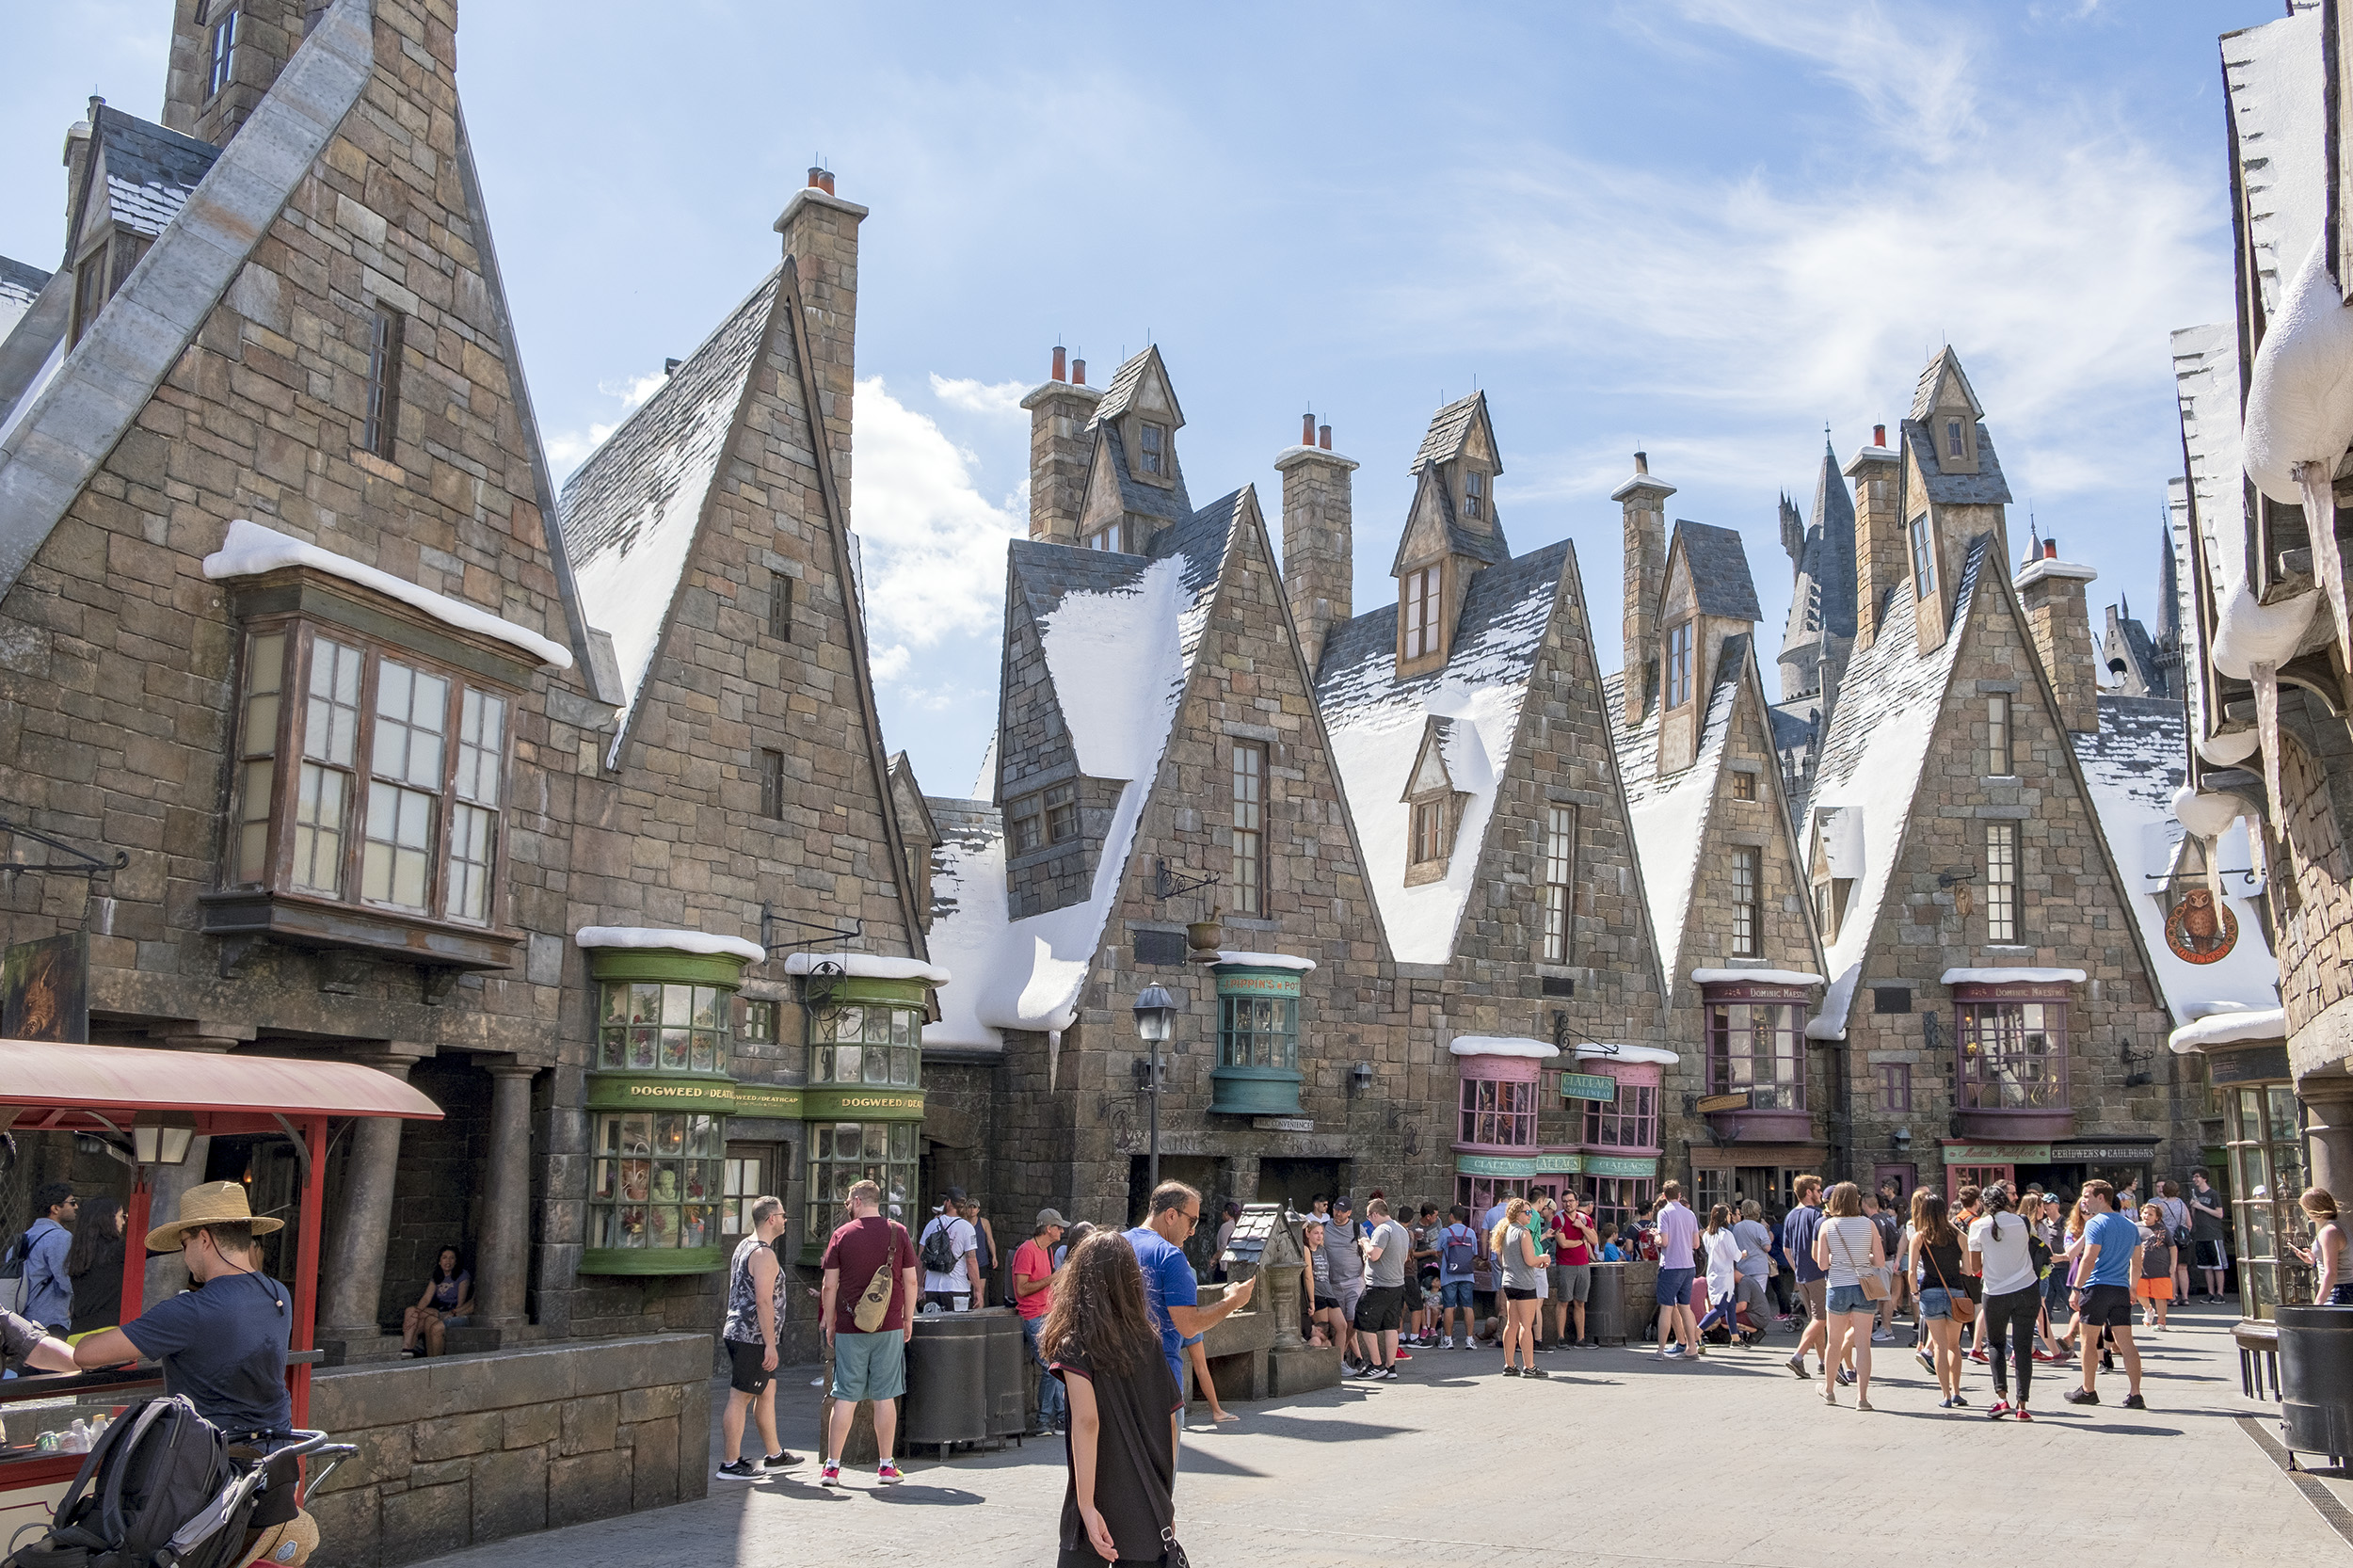 Hogsmeade Village. The Wizarding World of Harry Potter